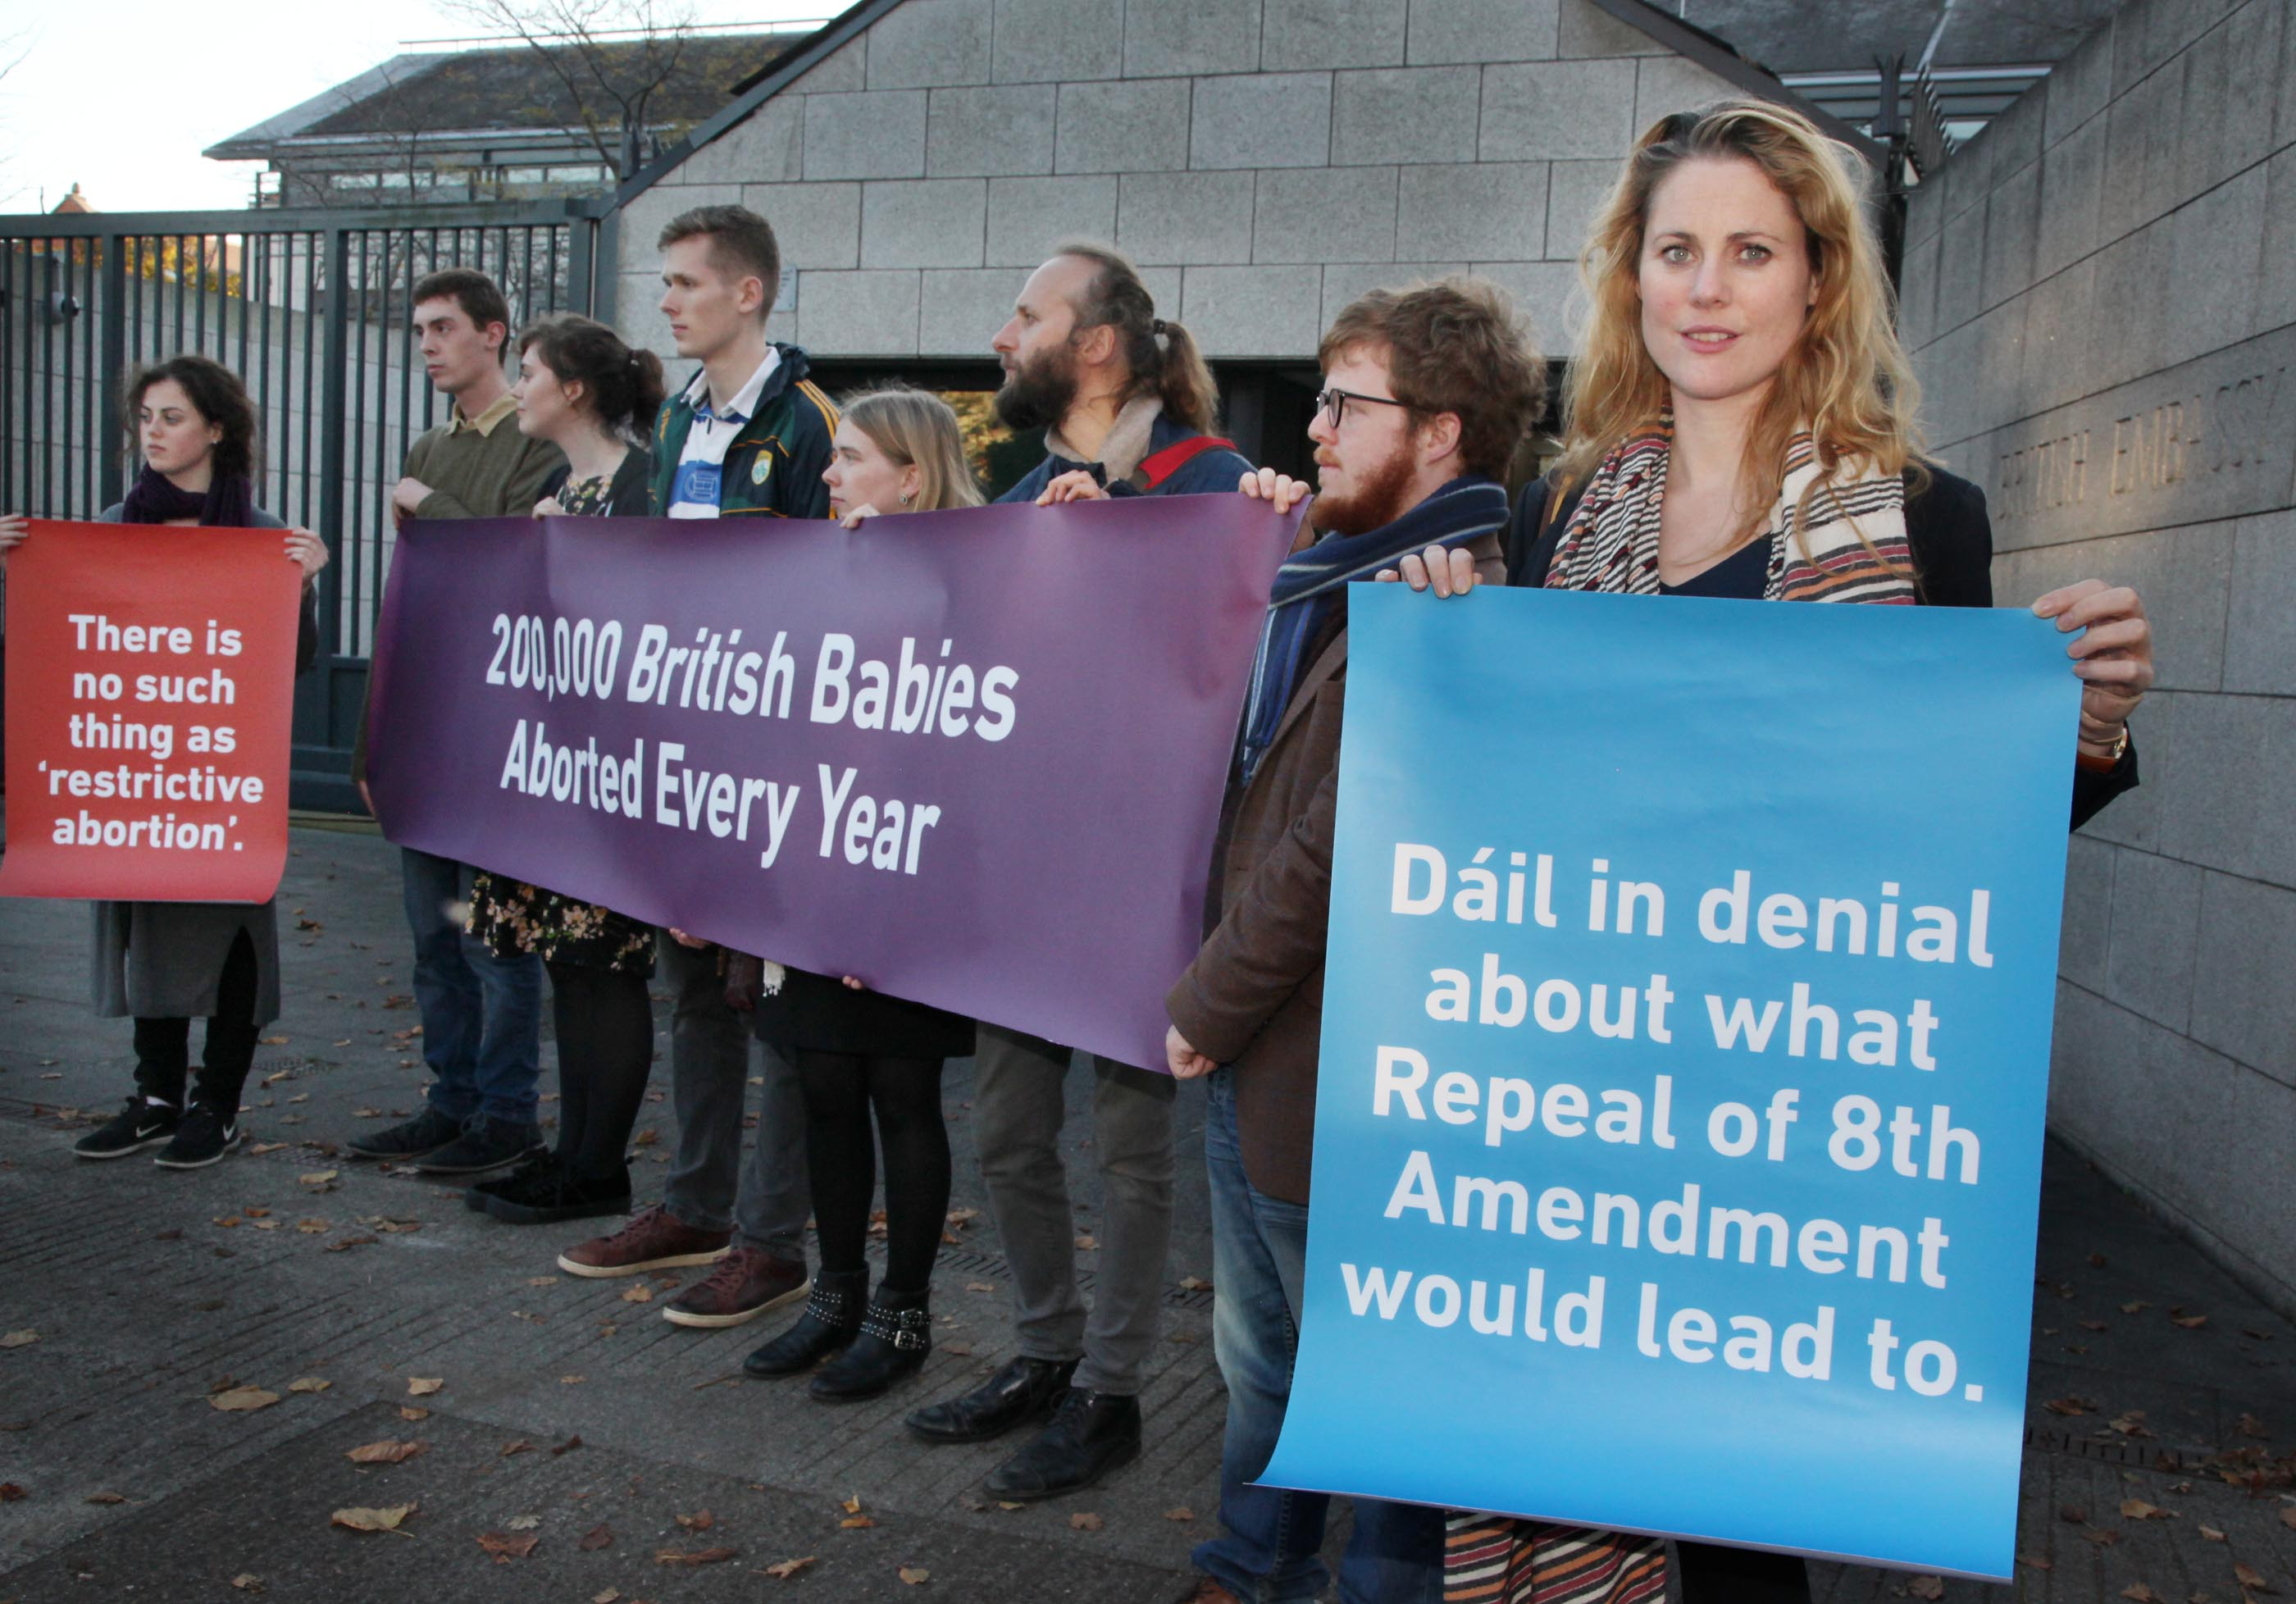 27.10.2017: 50thanniversary of Abortion Act – timely reminder that there's no such thing as 'restrictive' abortion, says PLC